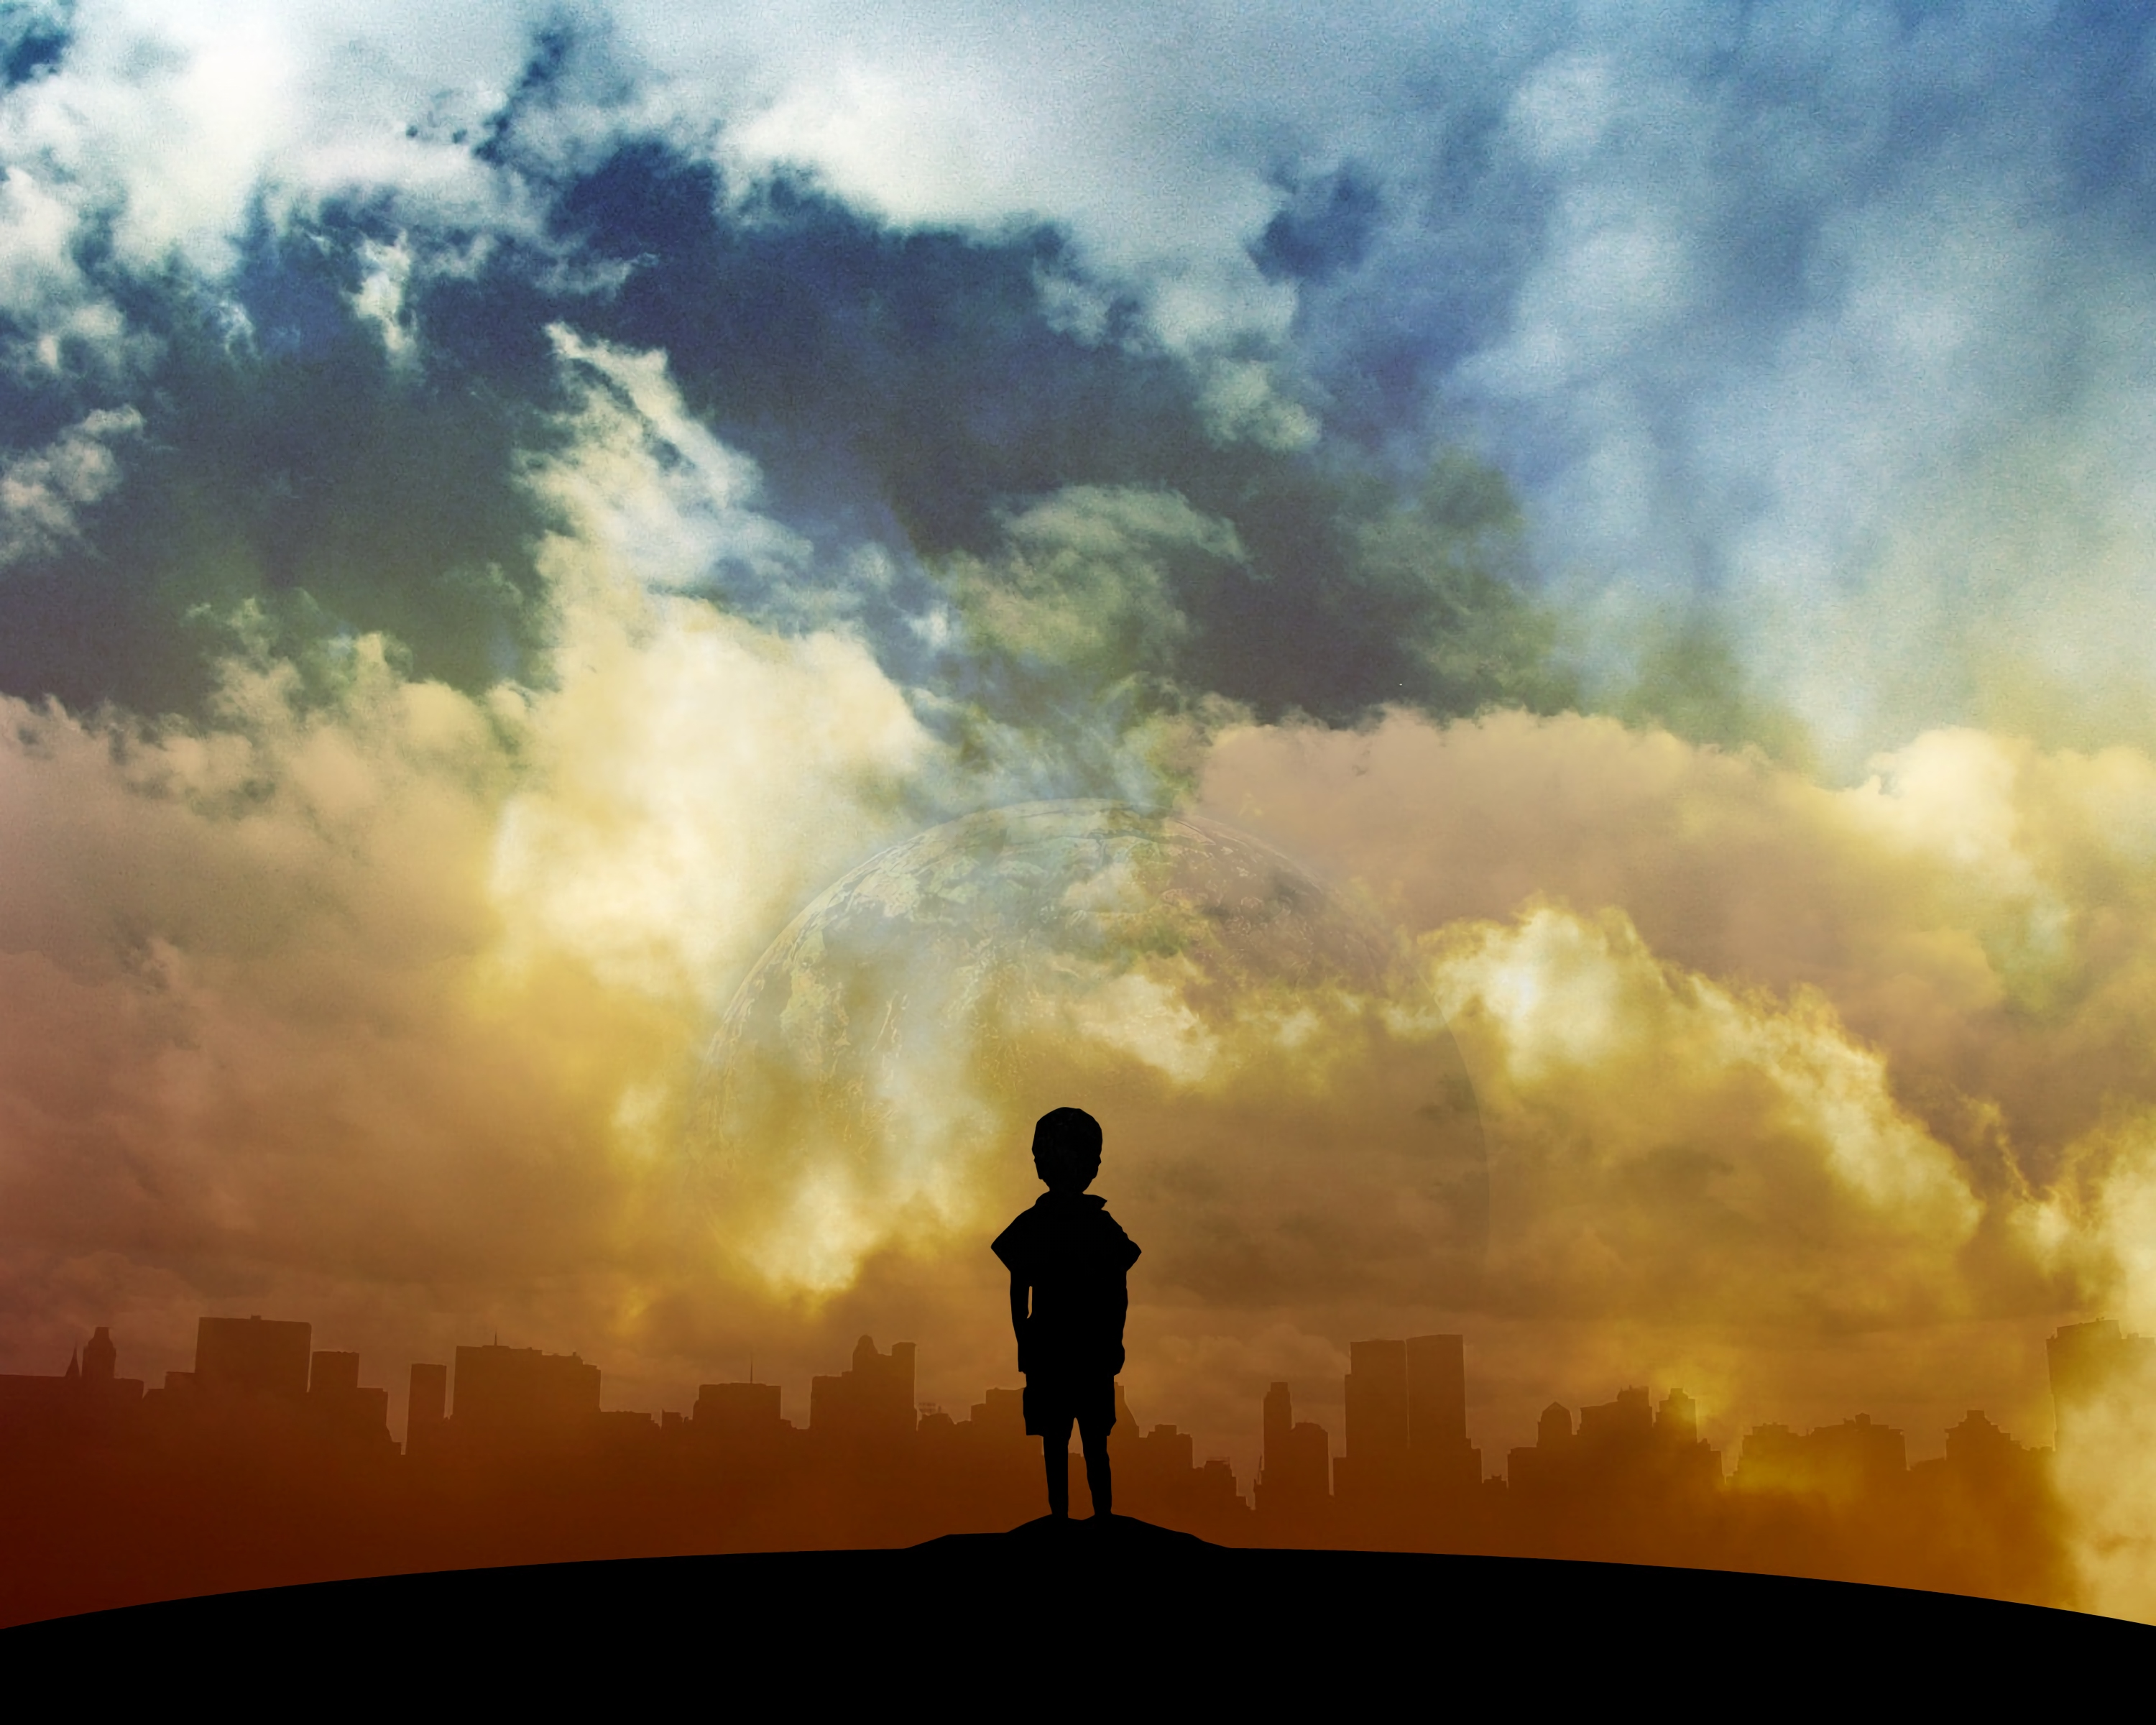 70854 download wallpaper Child, Art, Planet, Clouds, City screensavers and pictures for free